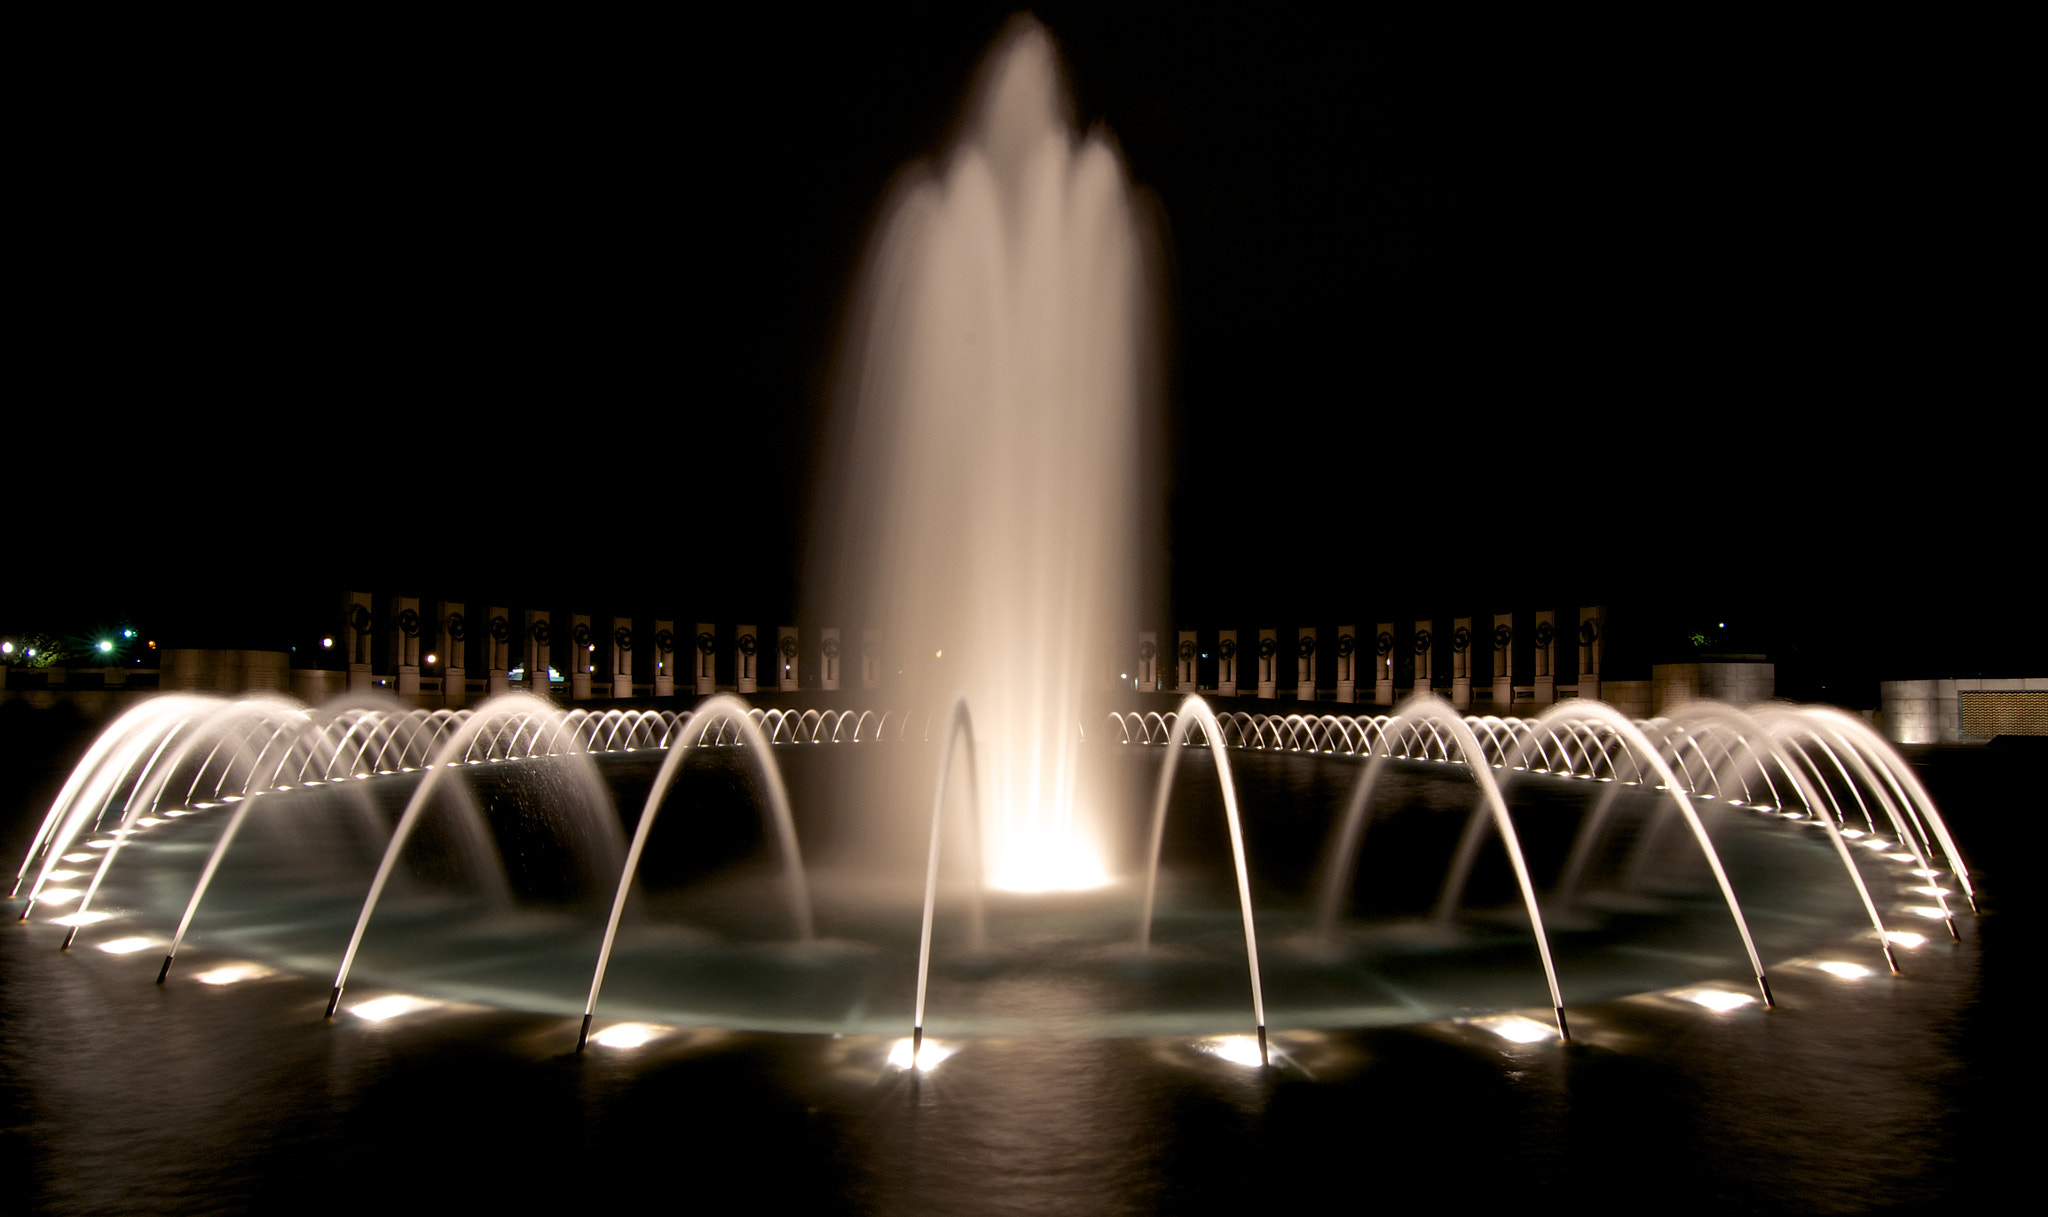 Photograph World War II Memorial by Theodore Kim on 500px